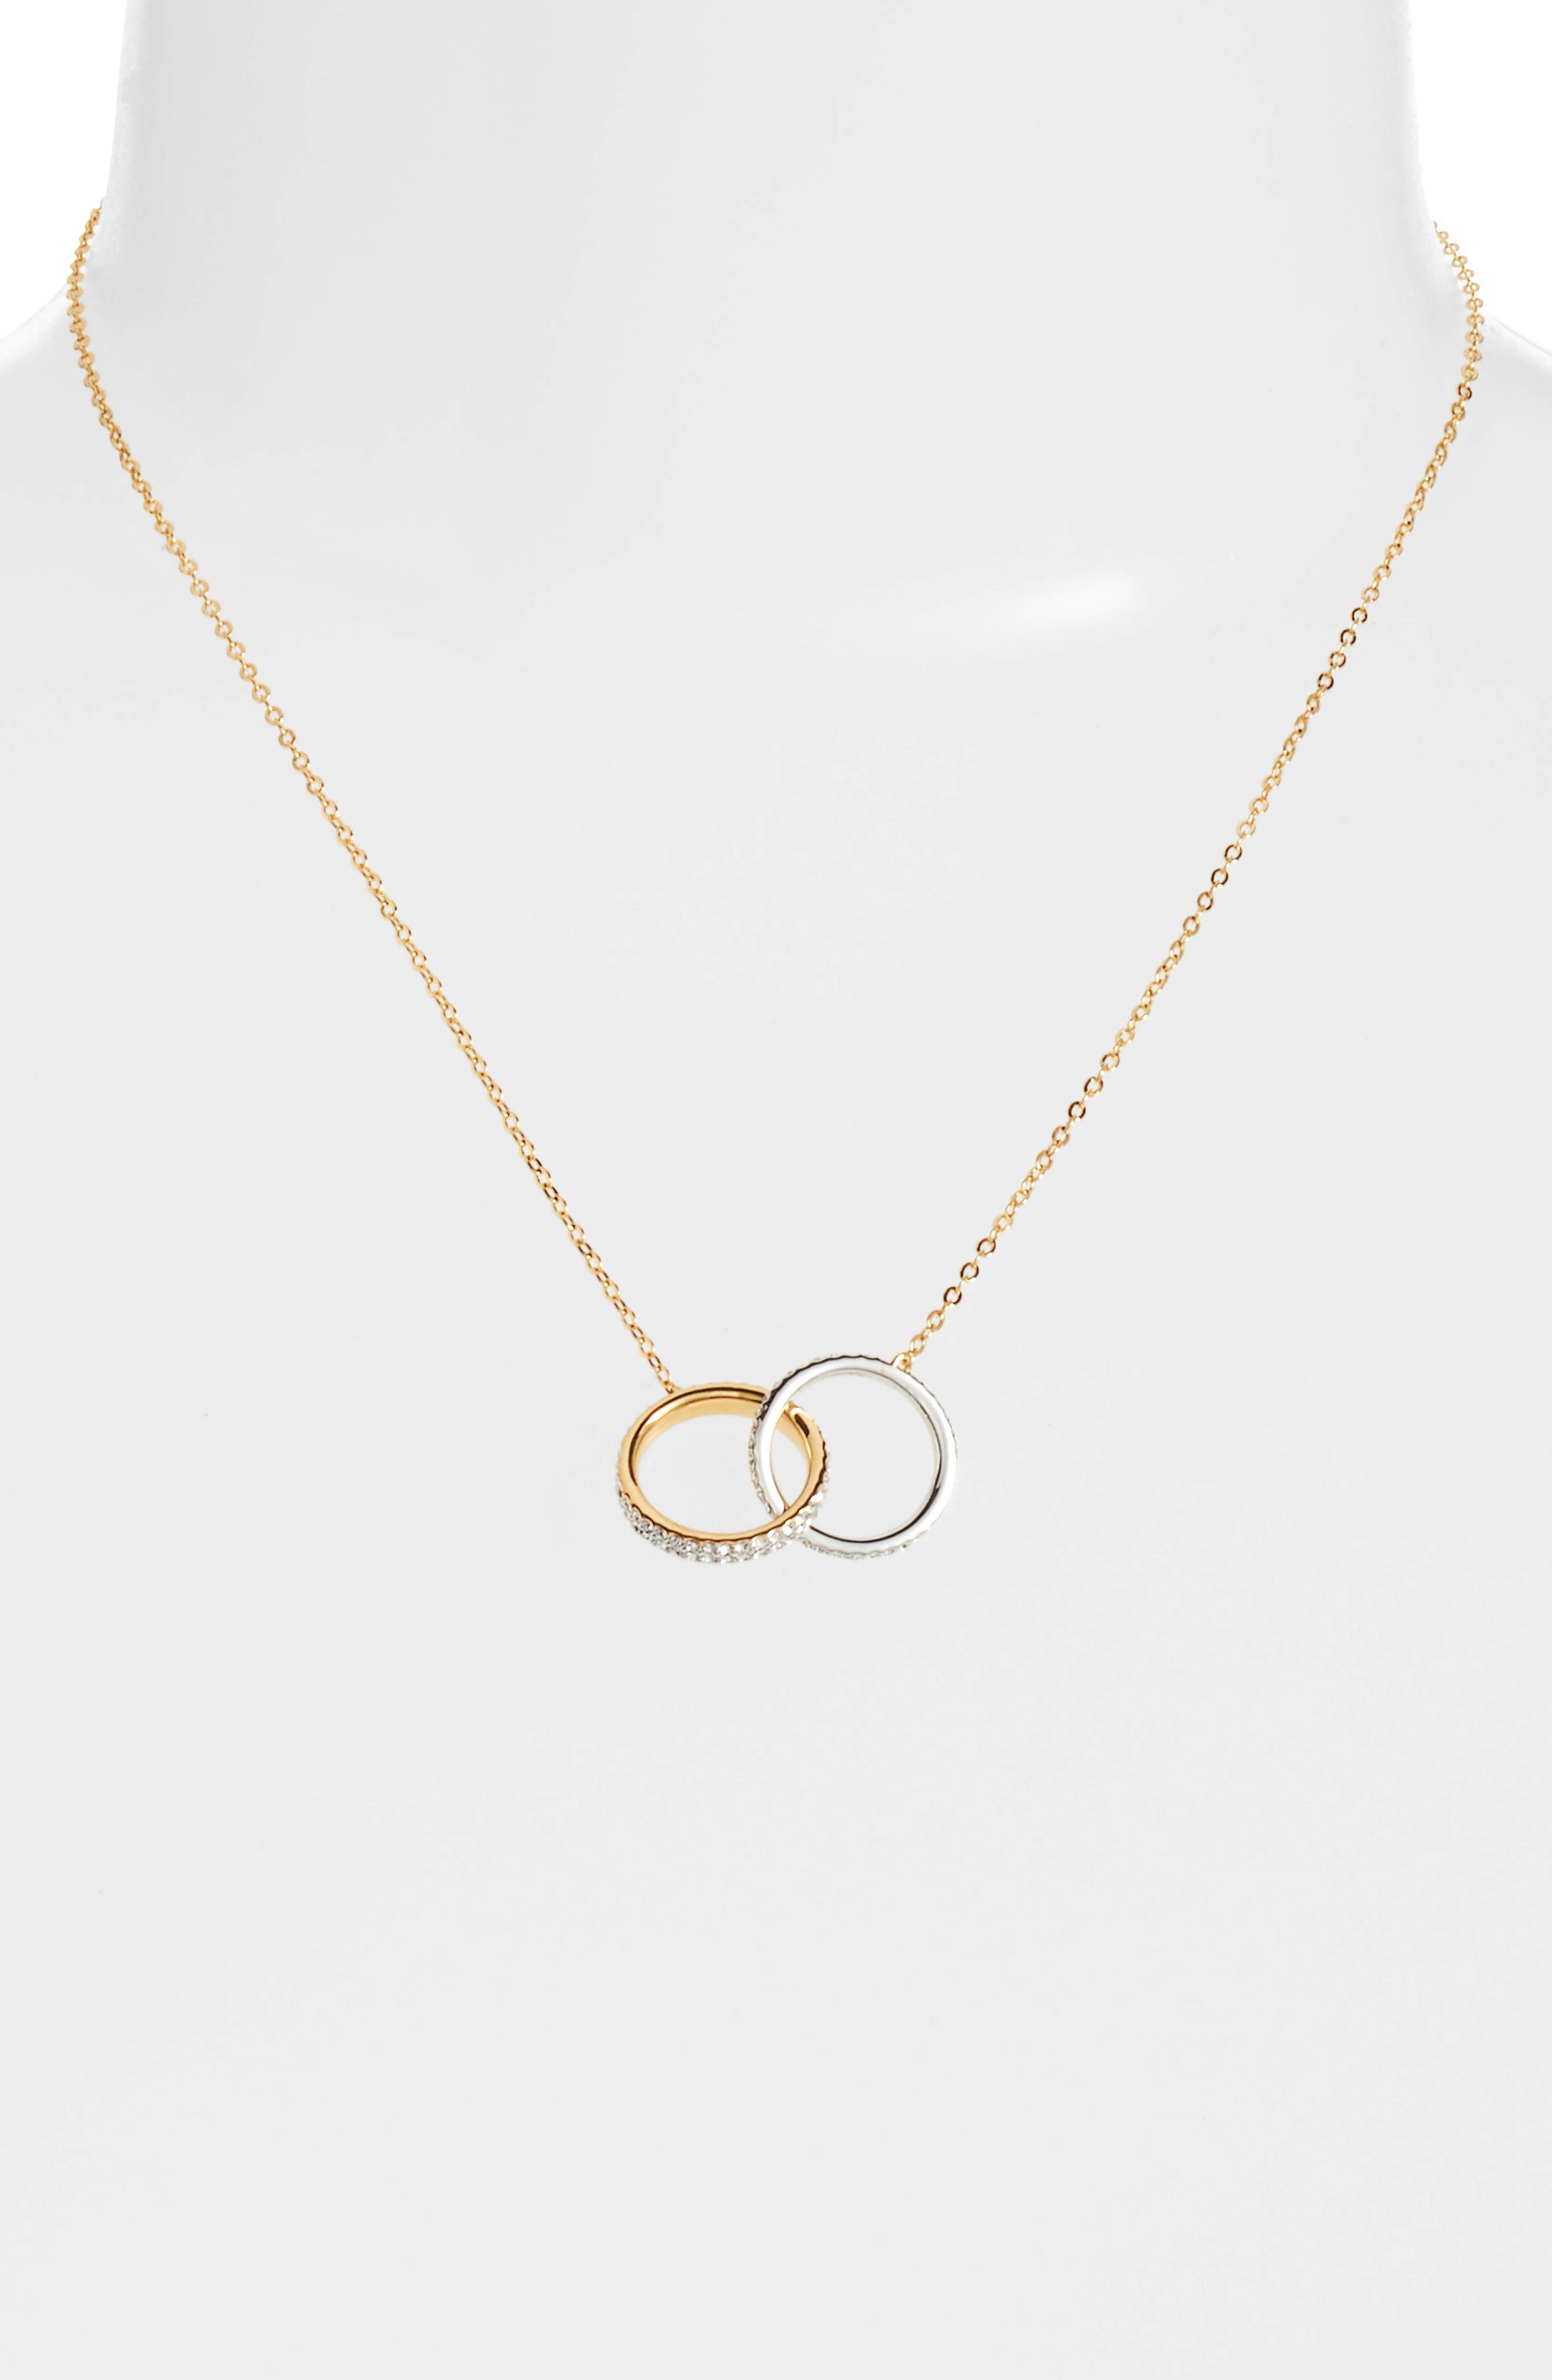 Trinity Double Link Pendant Necklace,                             Alternate thumbnail 2, color,                             GOLD / SILVER